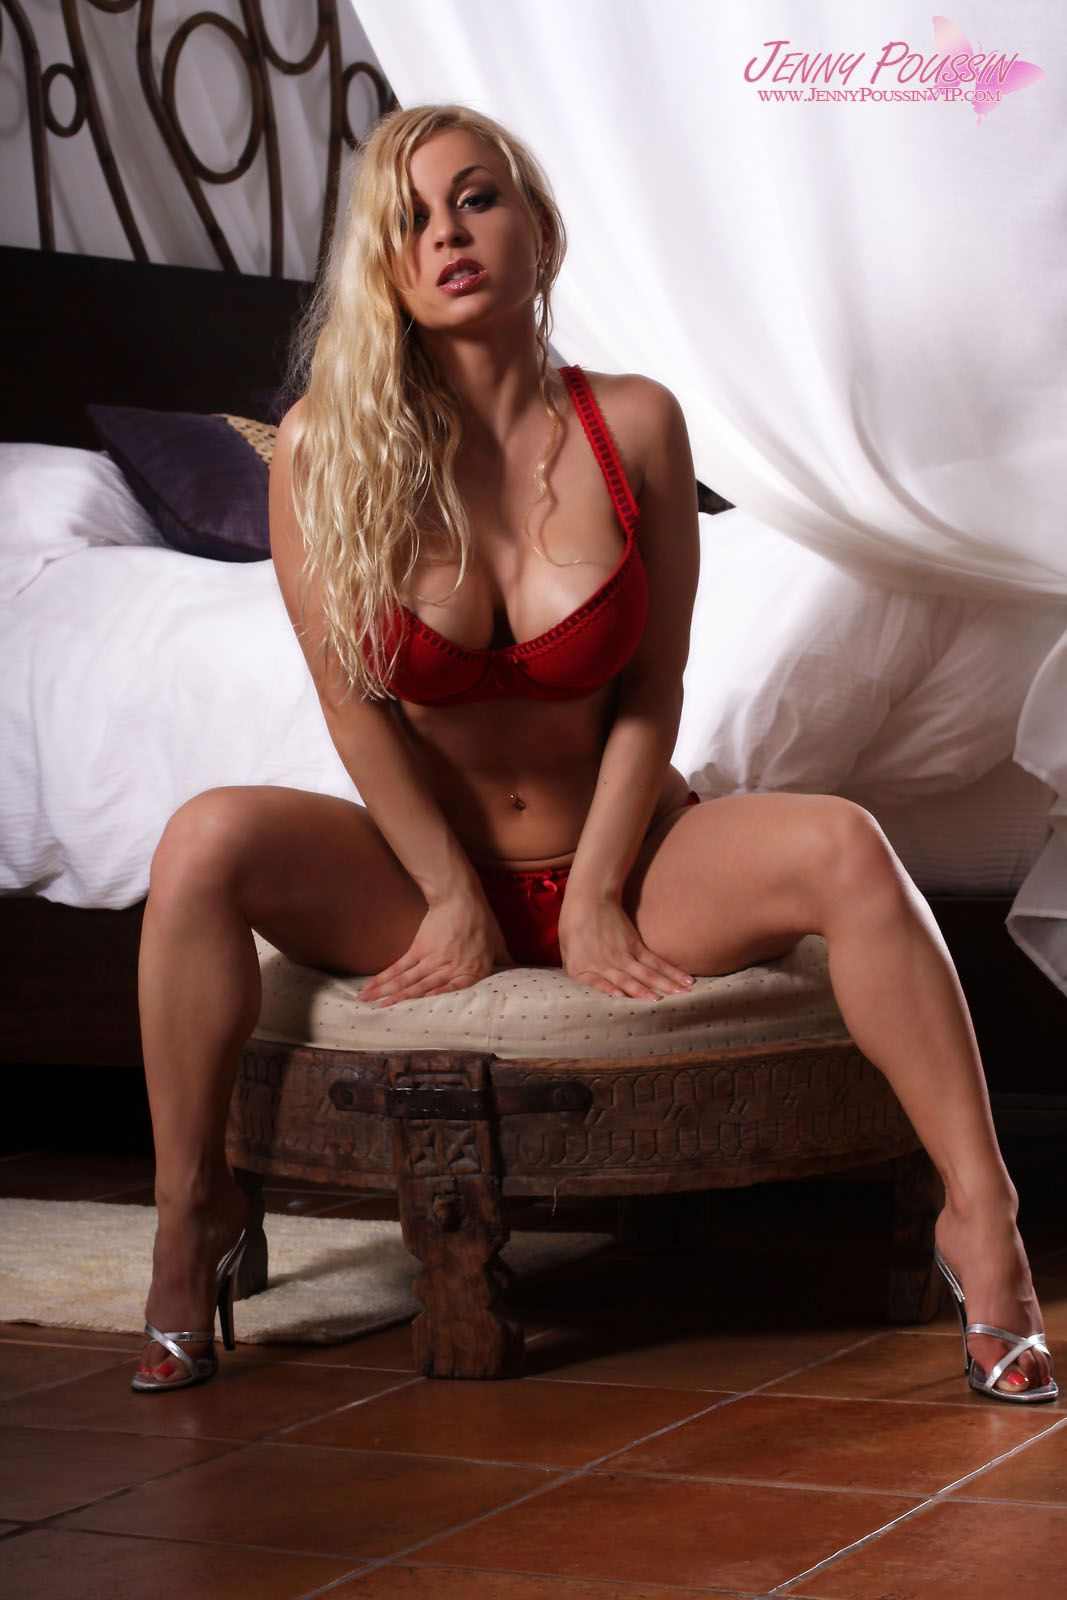 jenny poussin preview of her set hotel suite. | knock out women